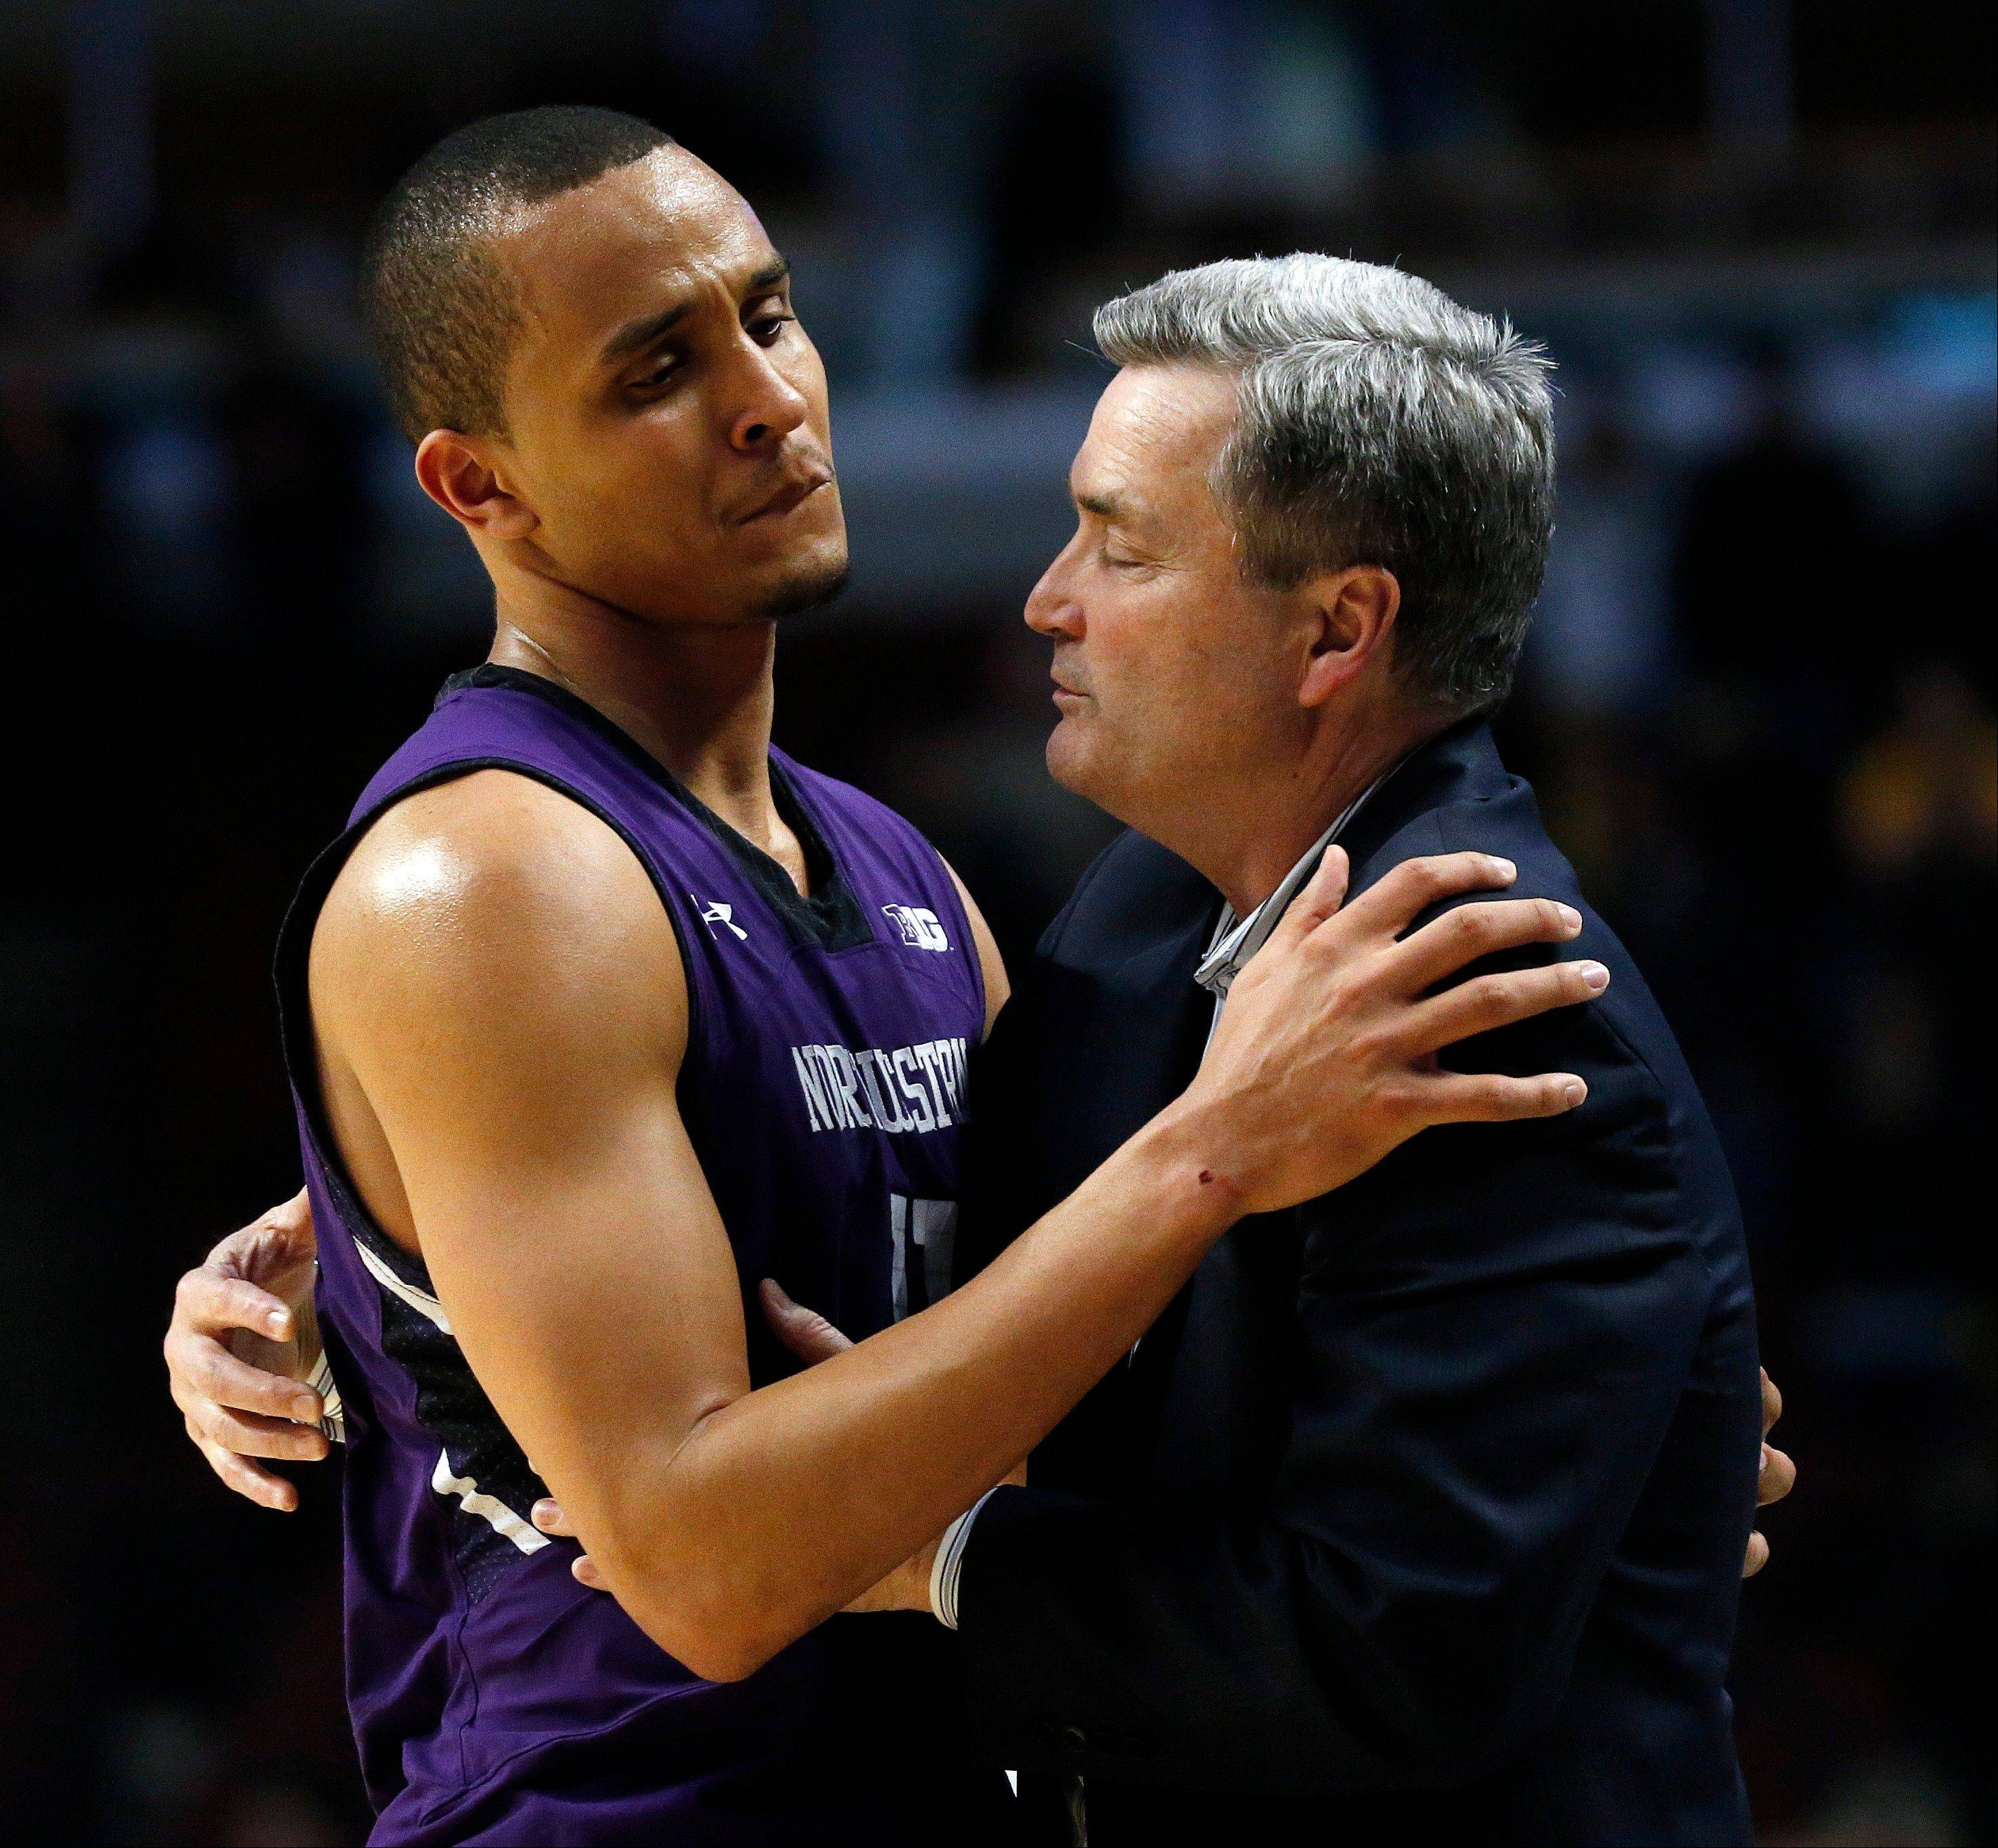 Northwestern head coach Bill Carmody hugs Reggie Hearn after the game.